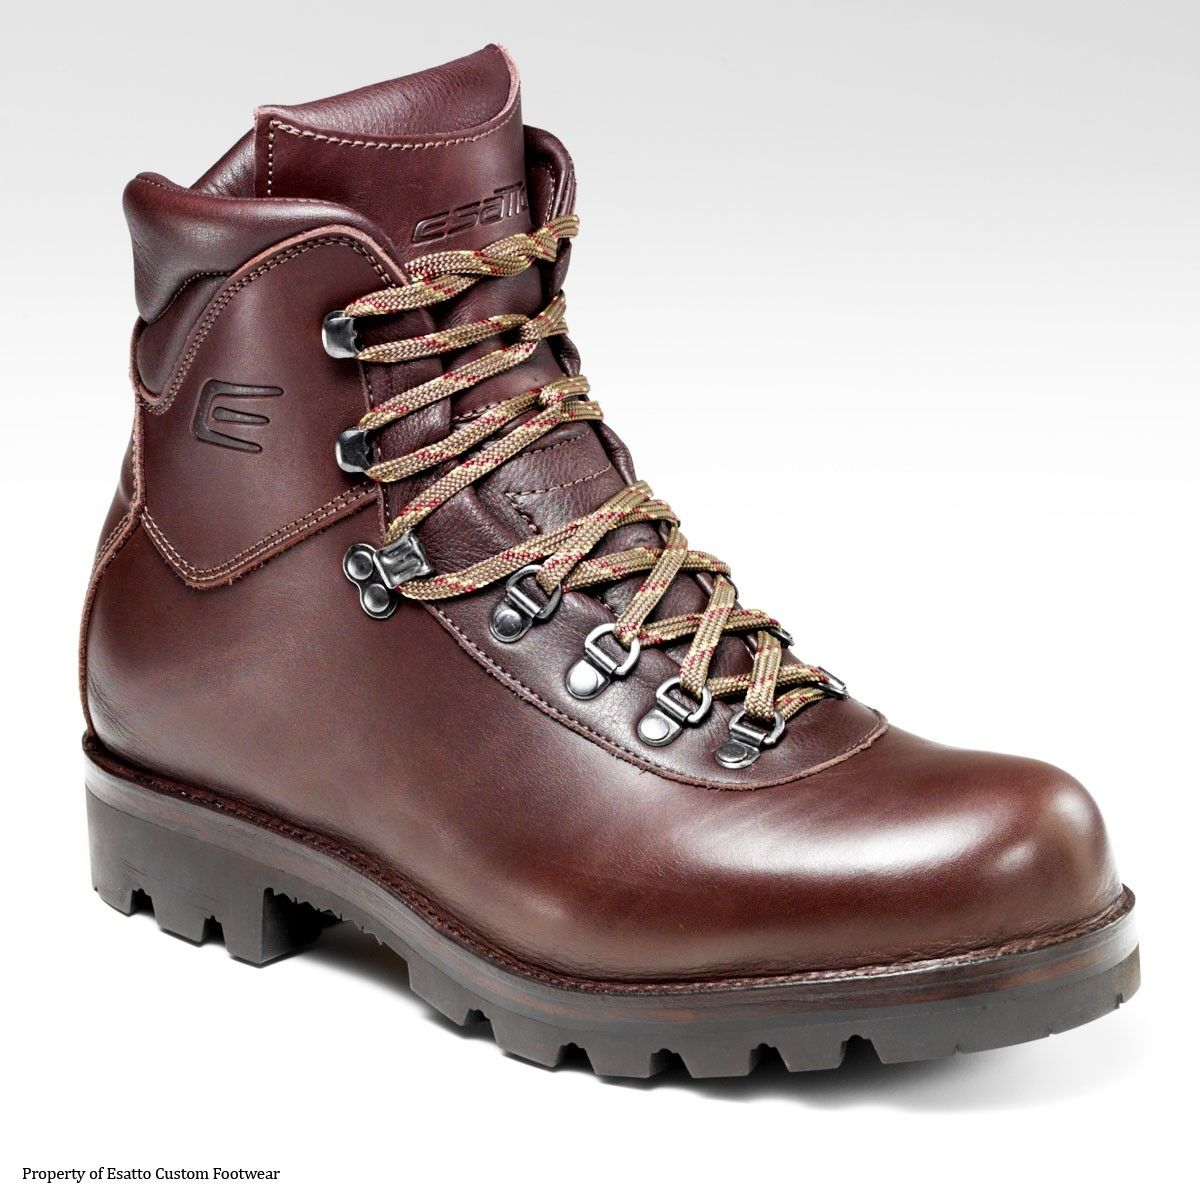 Handmade Esatto Custom Classic Hiker By Esatto Custom - Handmade Boots